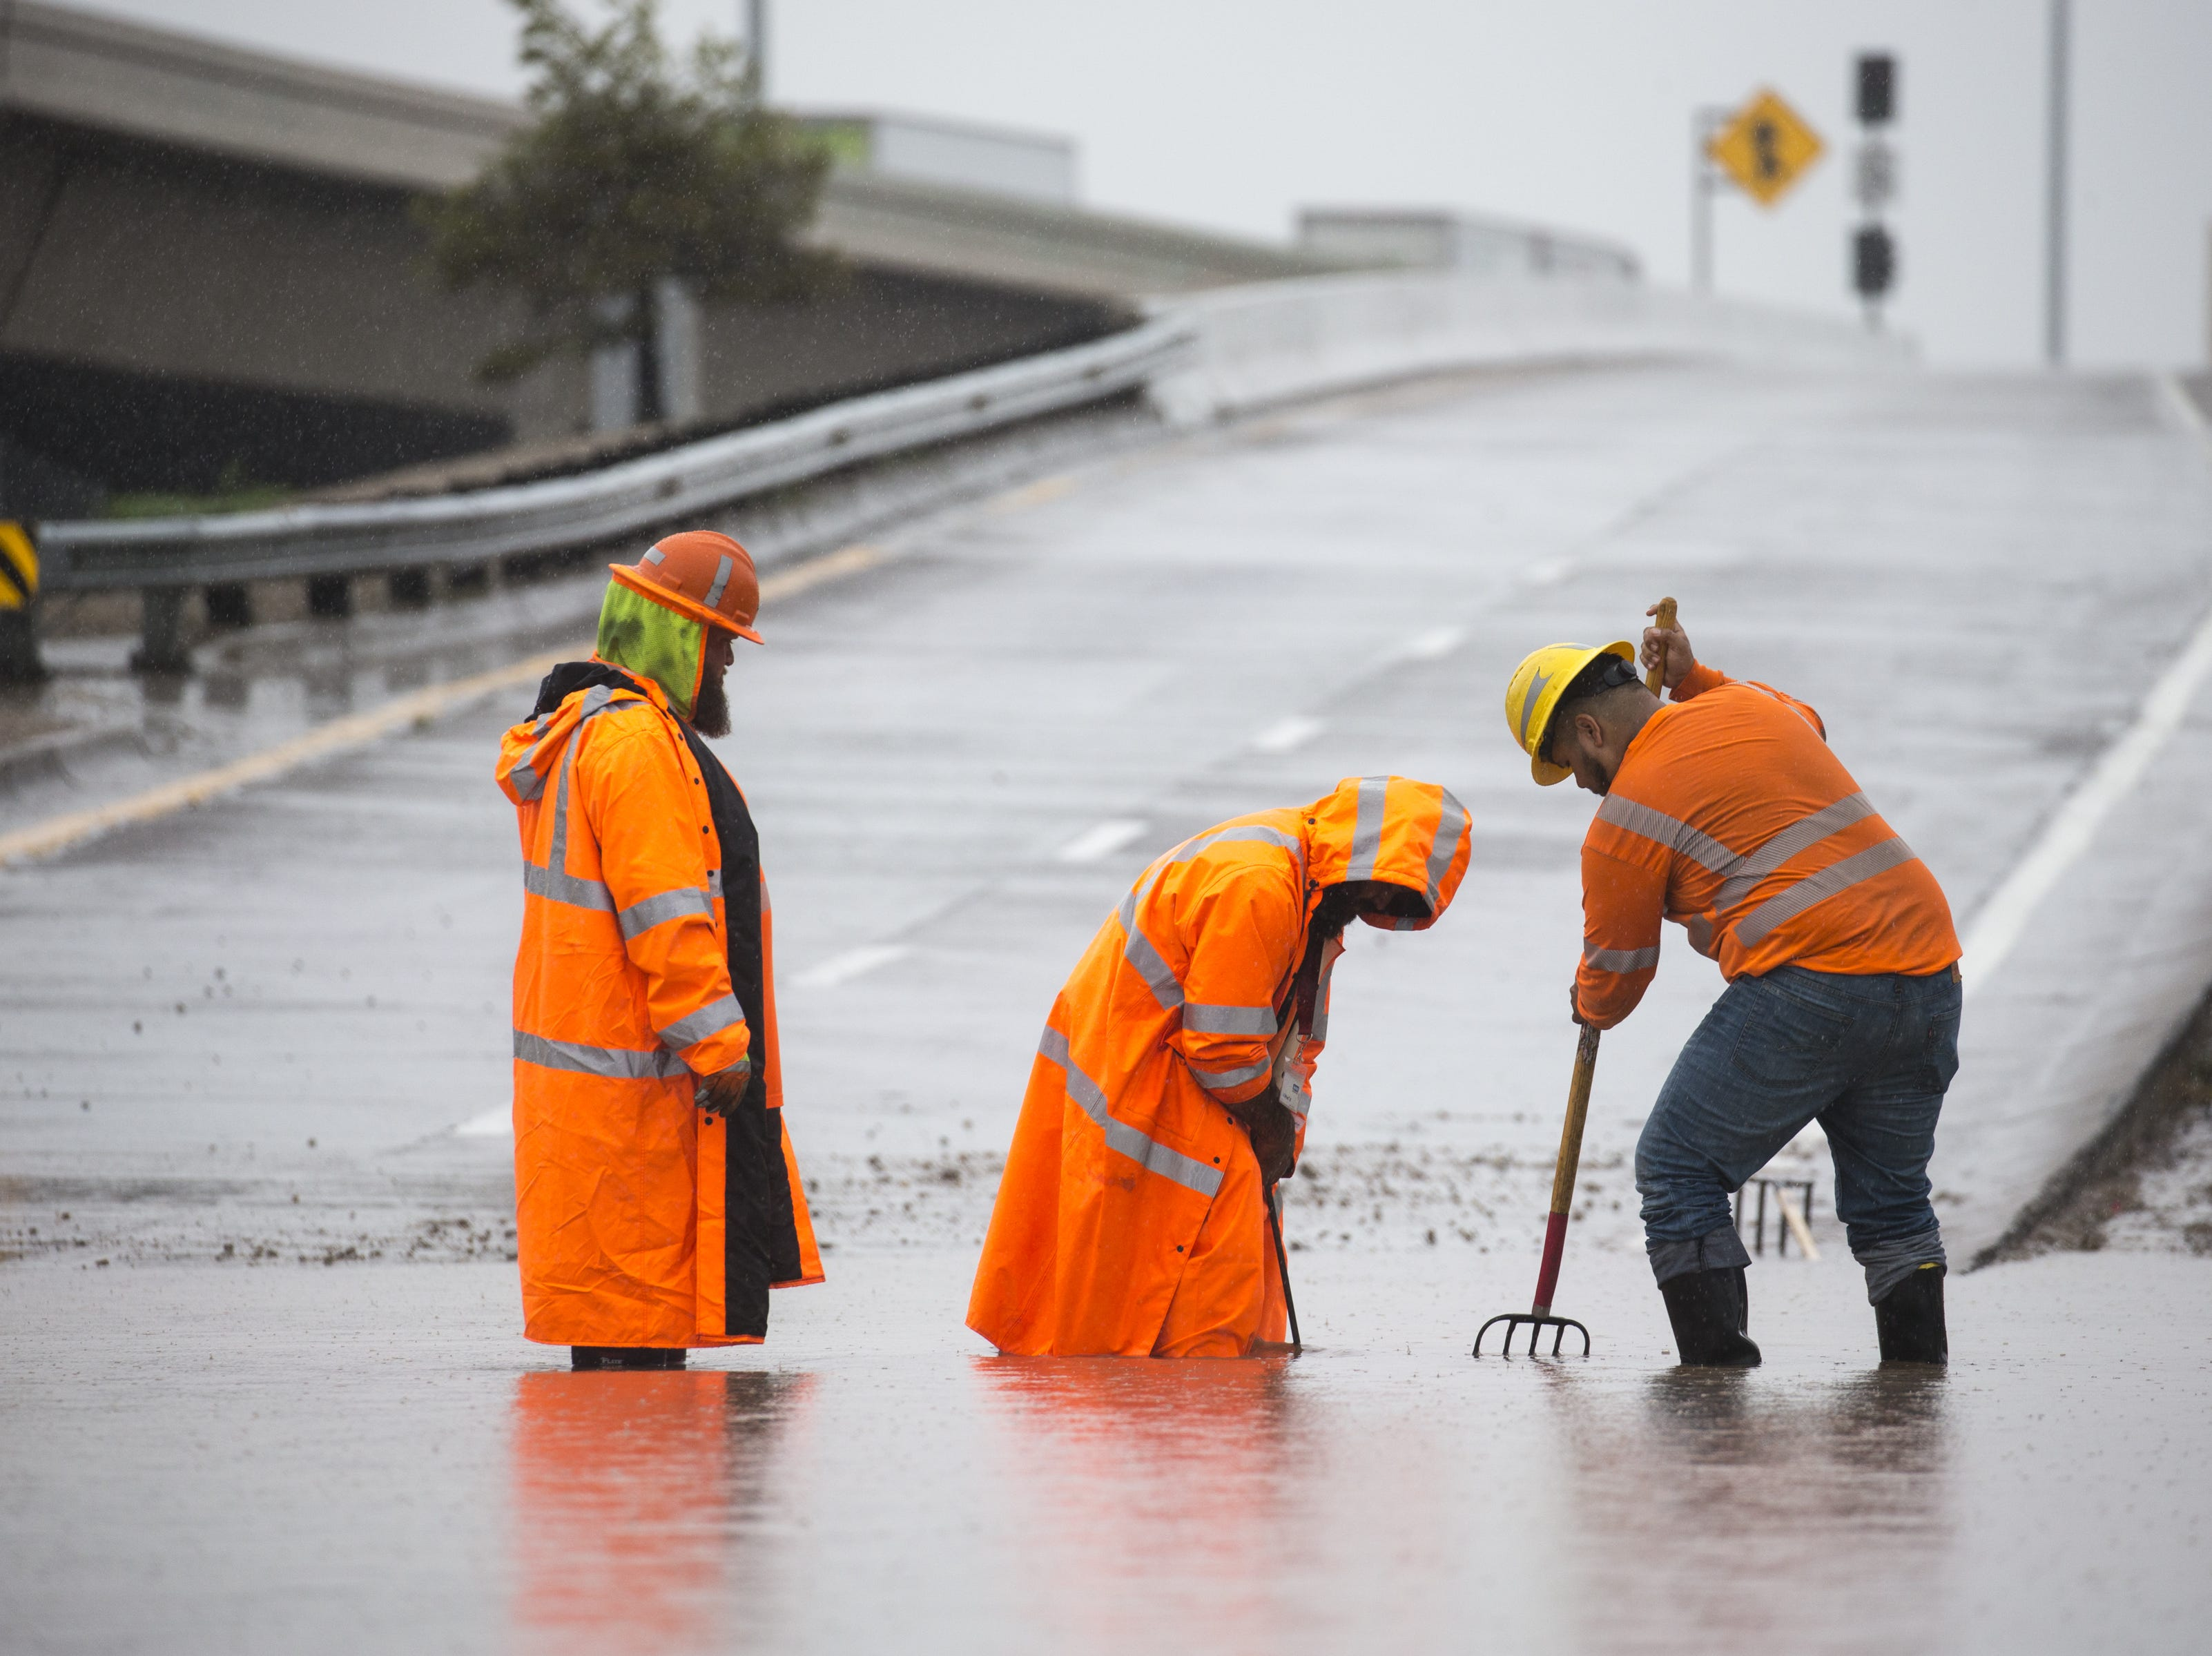 From left: Alan Garcia, Alex Munoz and Mike Culp, all with the Arizona Department of Transportation, clear a drain on the closed I-10 on-ramp at 19th Avenue, Oct. 2, 2018, in Phoenix.